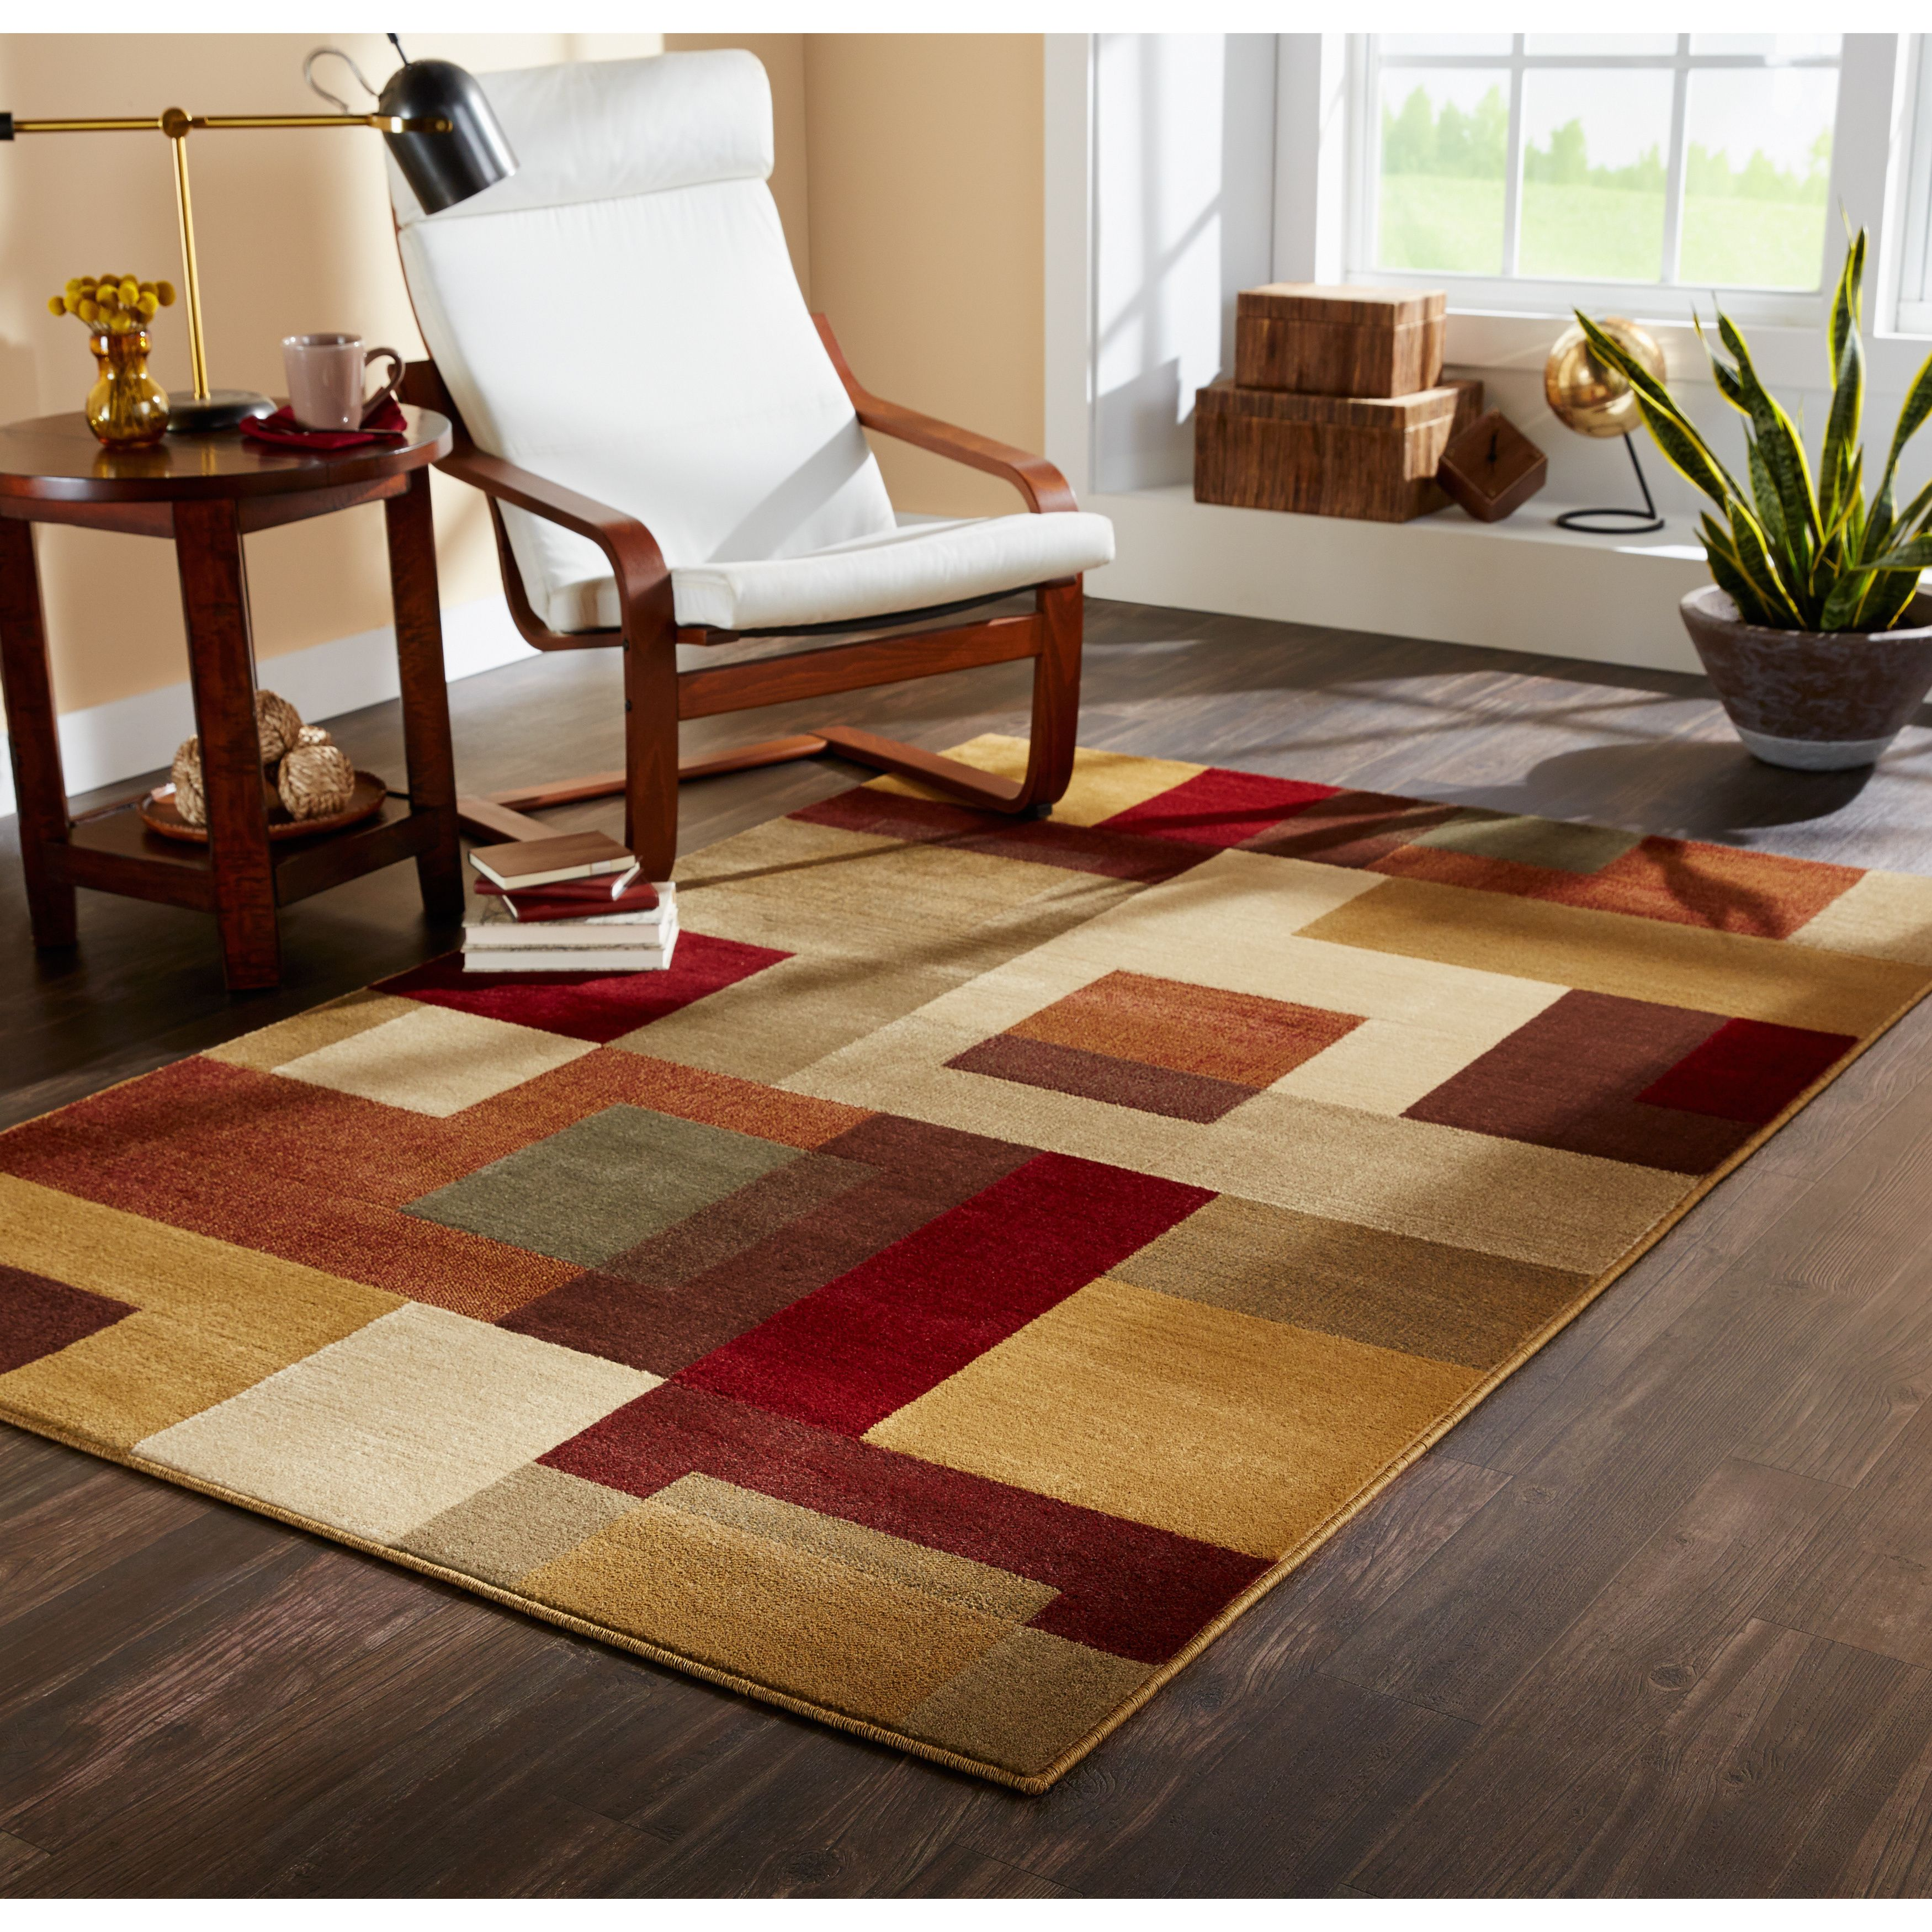 Overstock Com Online Shopping Bedding Furniture Electronics Jewelry Clothing More Area Rugs Rugs Tan Rug